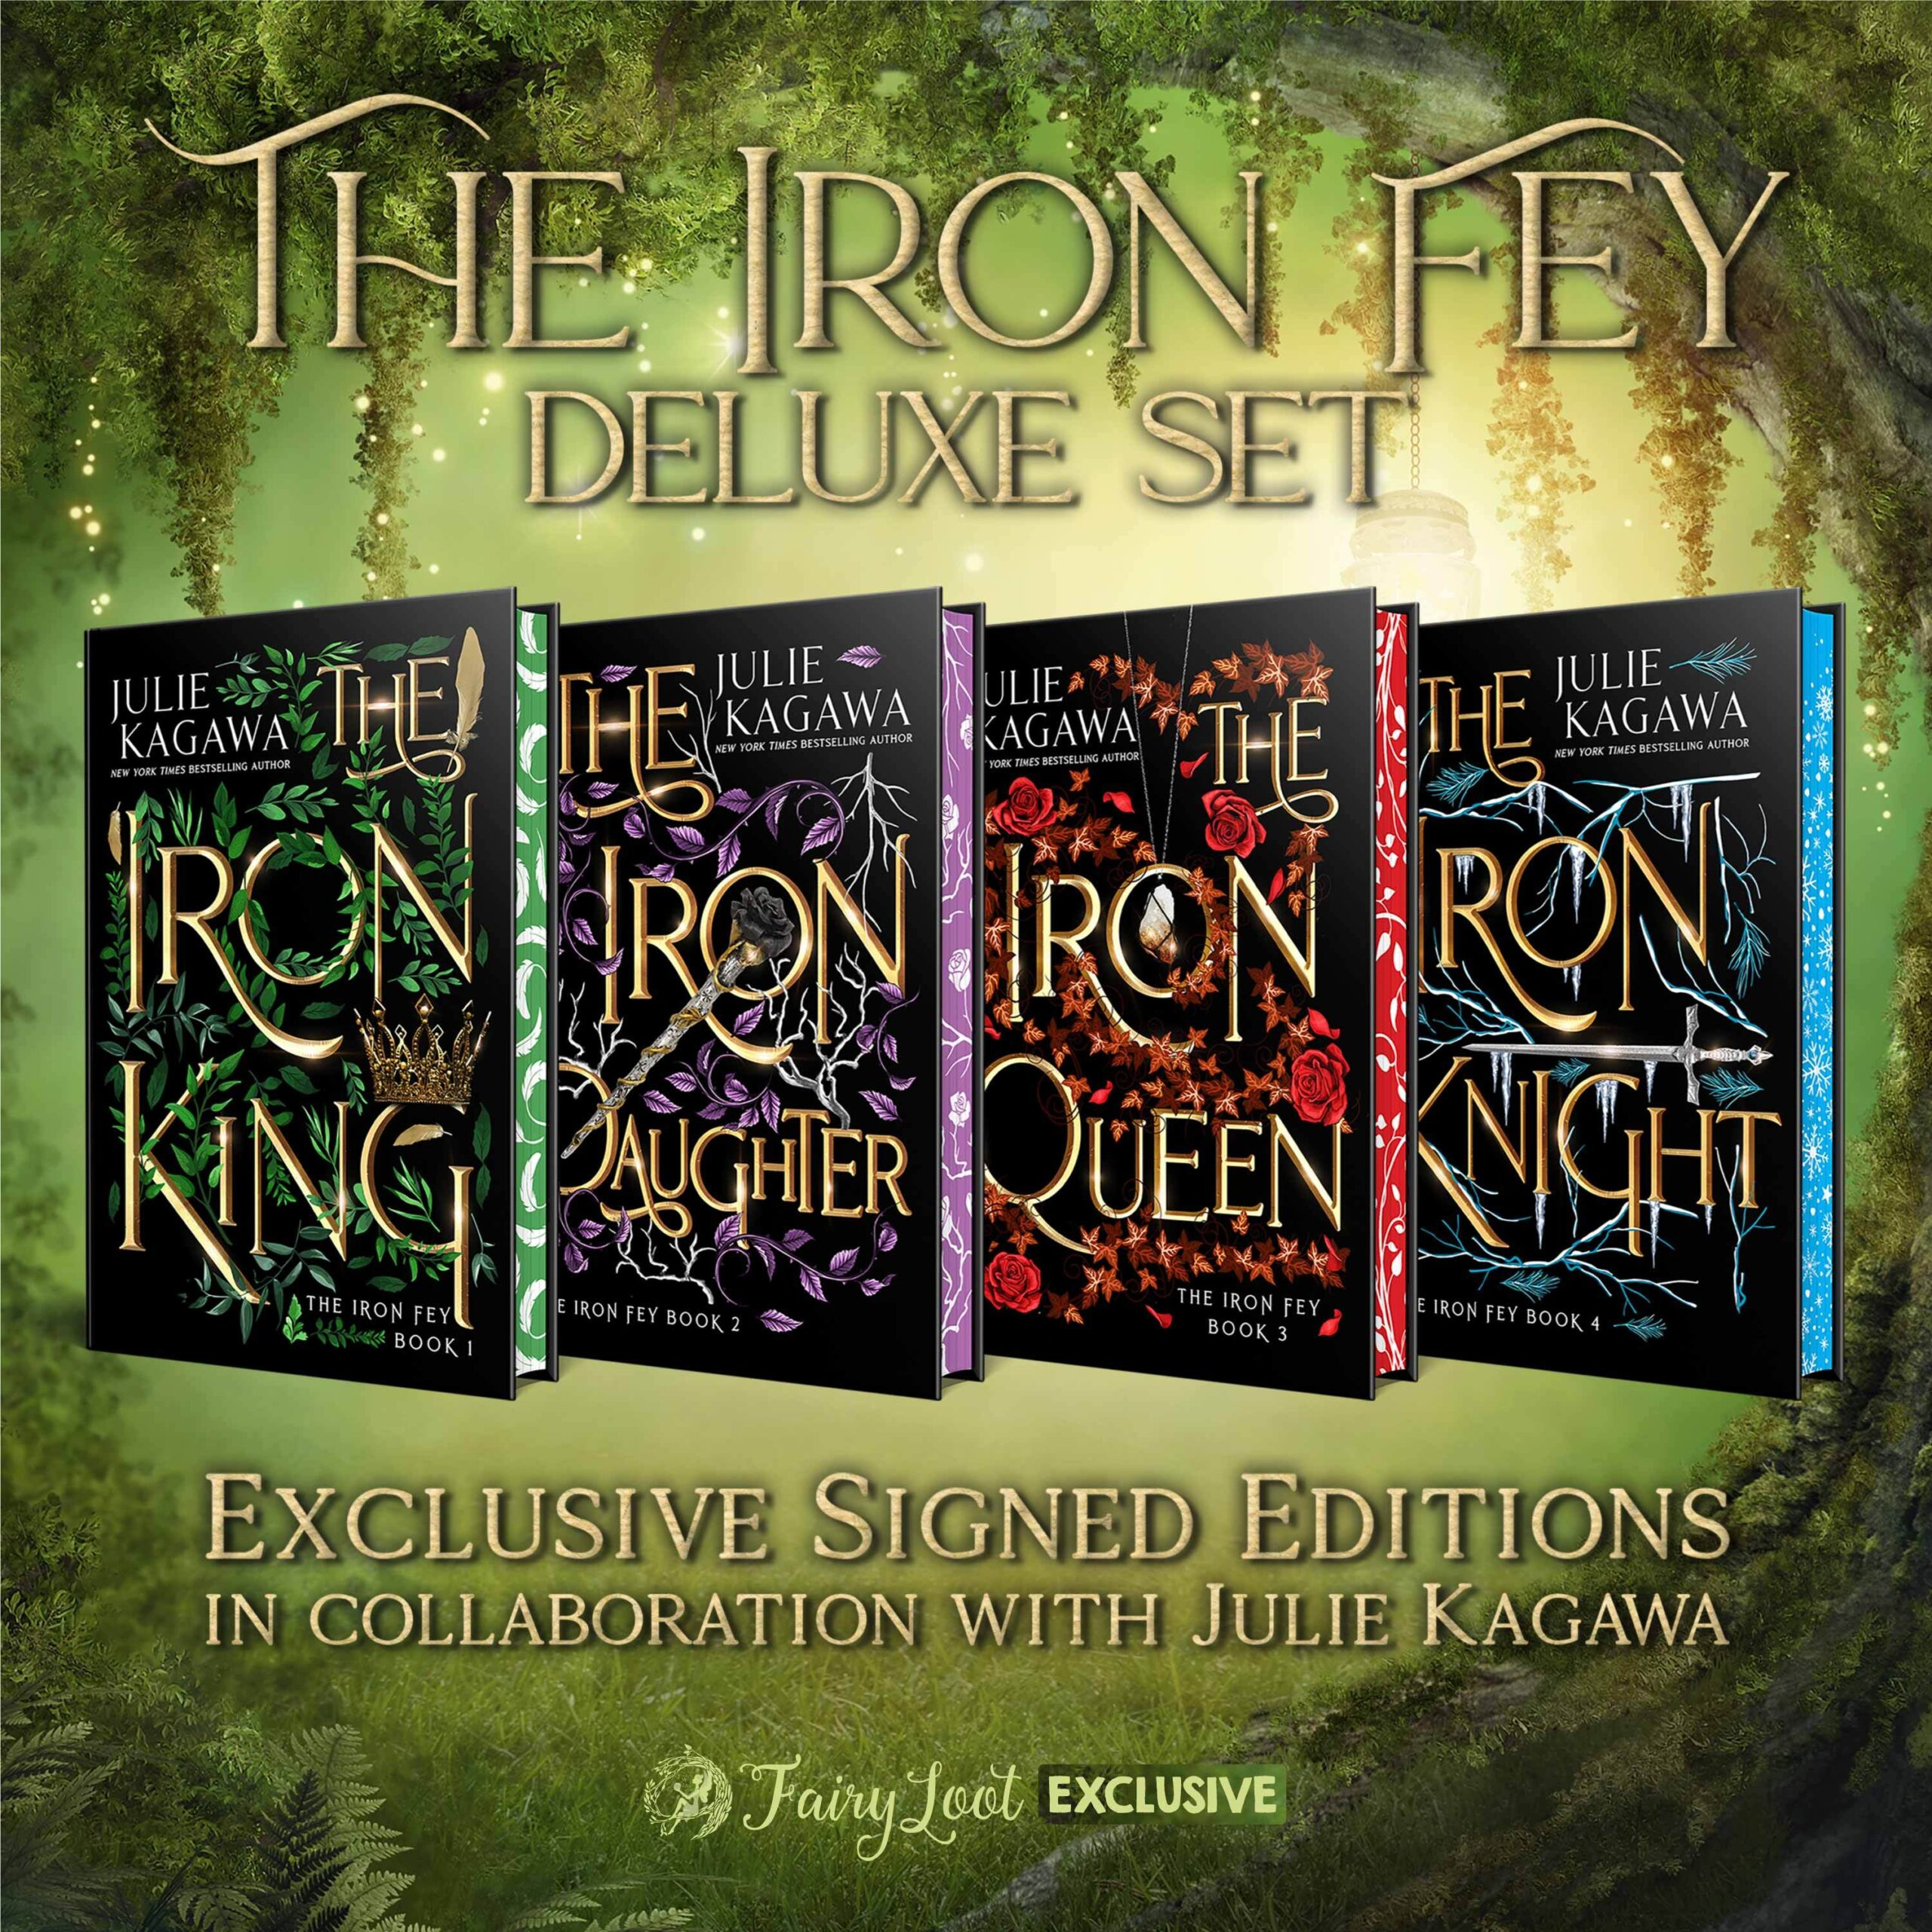 The Iron Fey DELUXE SET